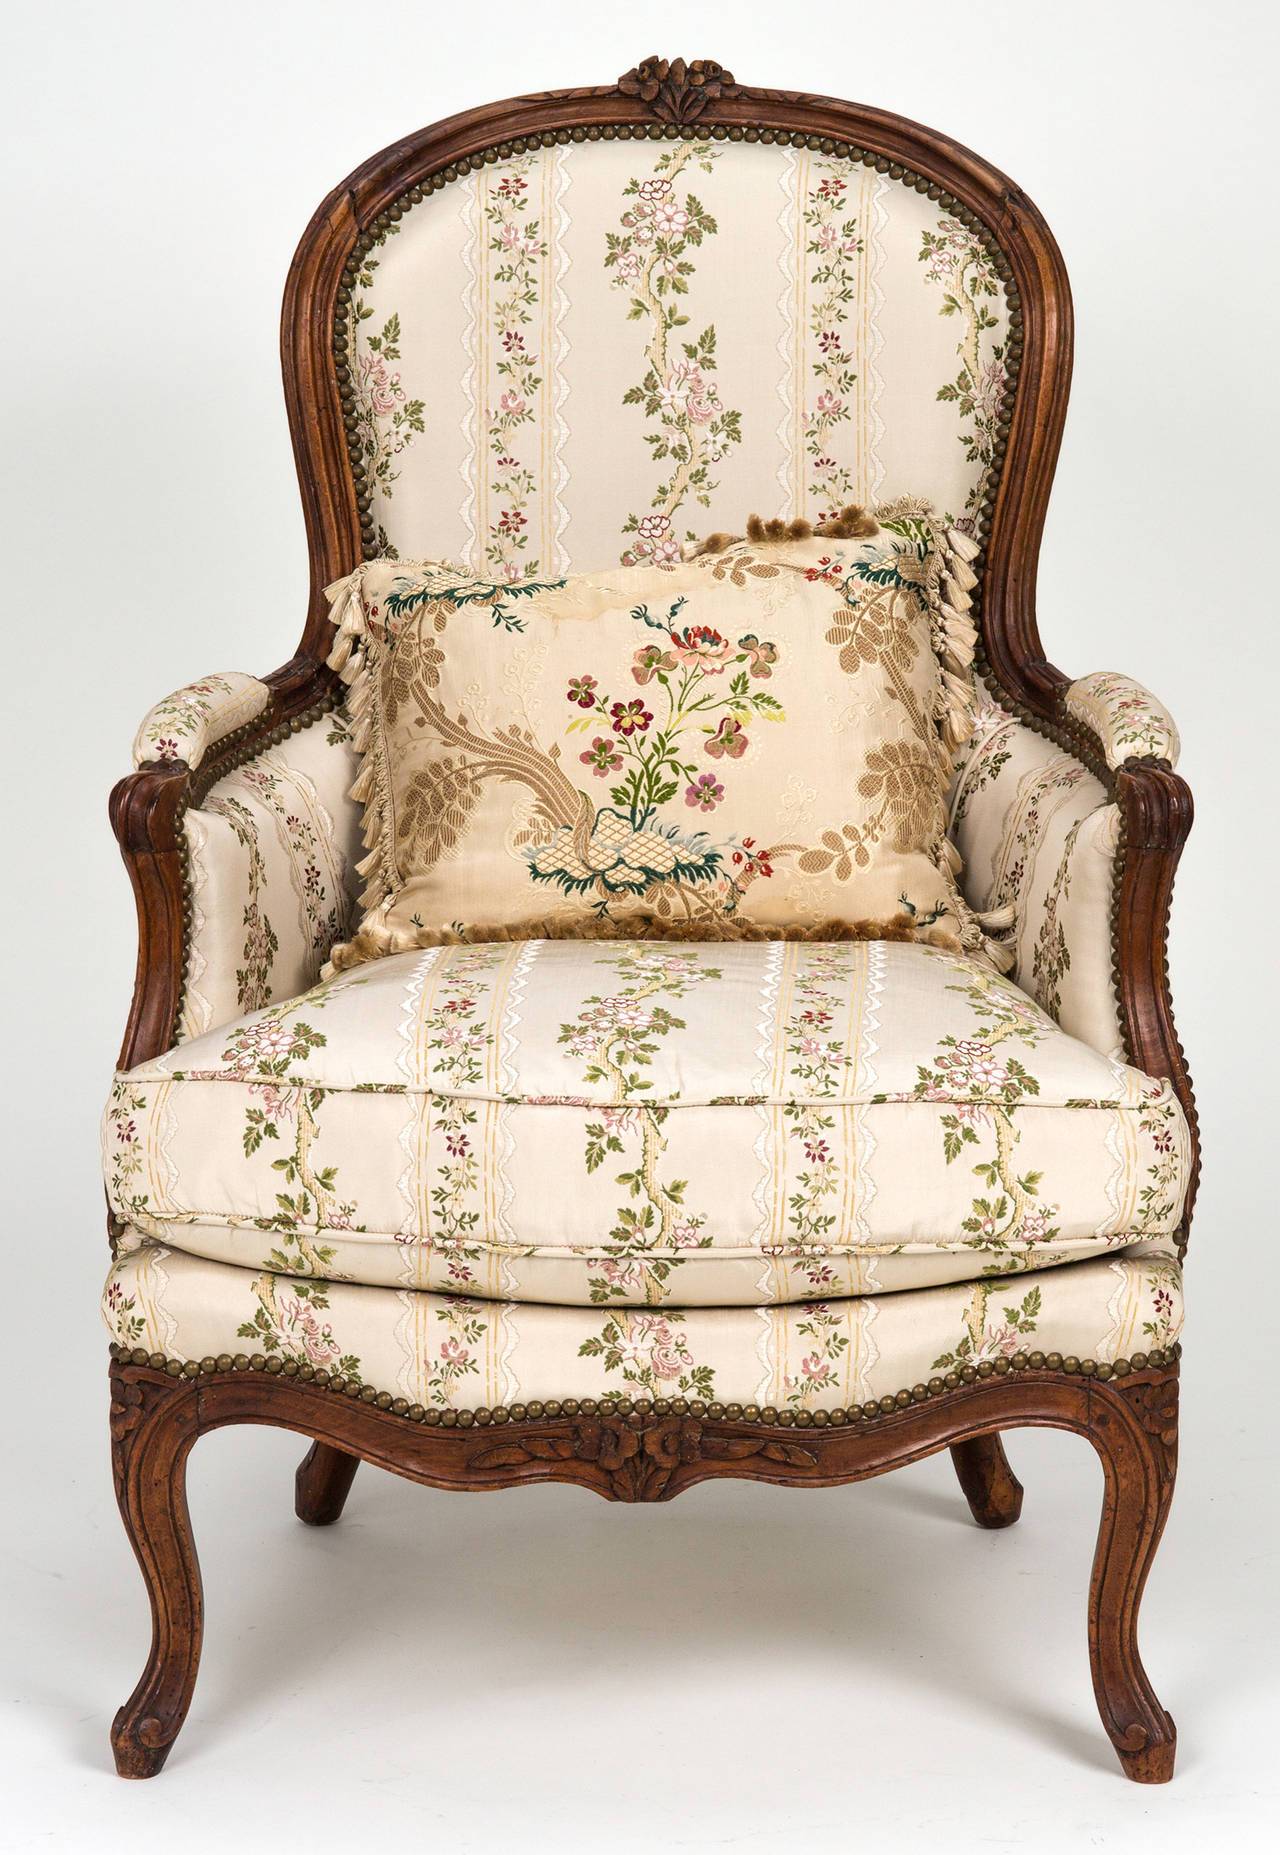 louis xv chair and ottoman chaise lounge at 1stdibs. Black Bedroom Furniture Sets. Home Design Ideas